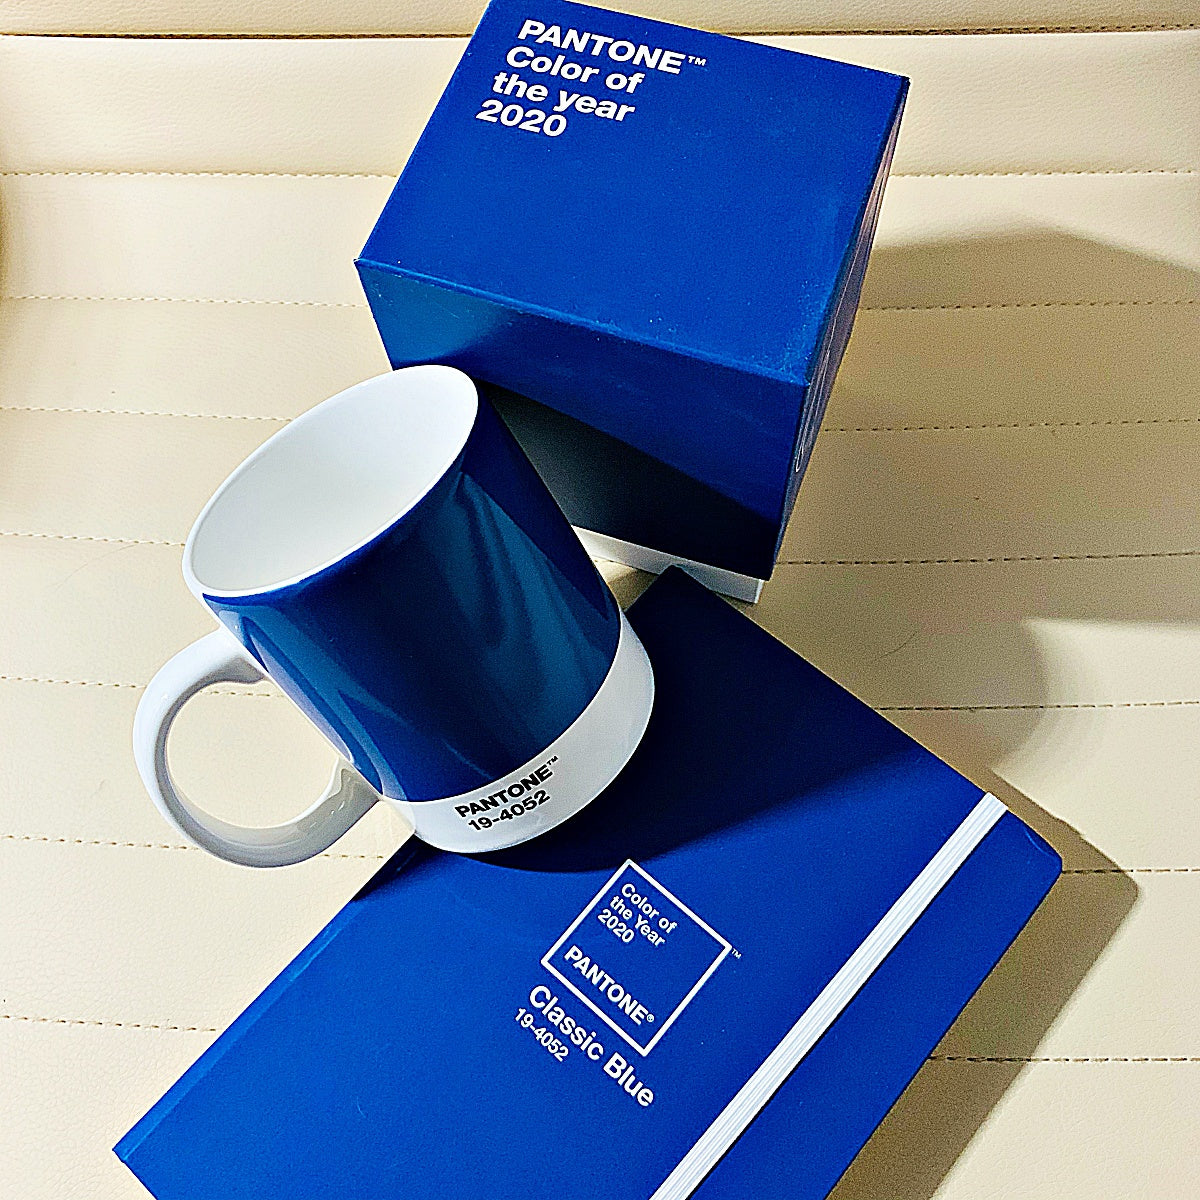 Pantone Color of the Year 2020 - Classic Blue - Cup and Notebook